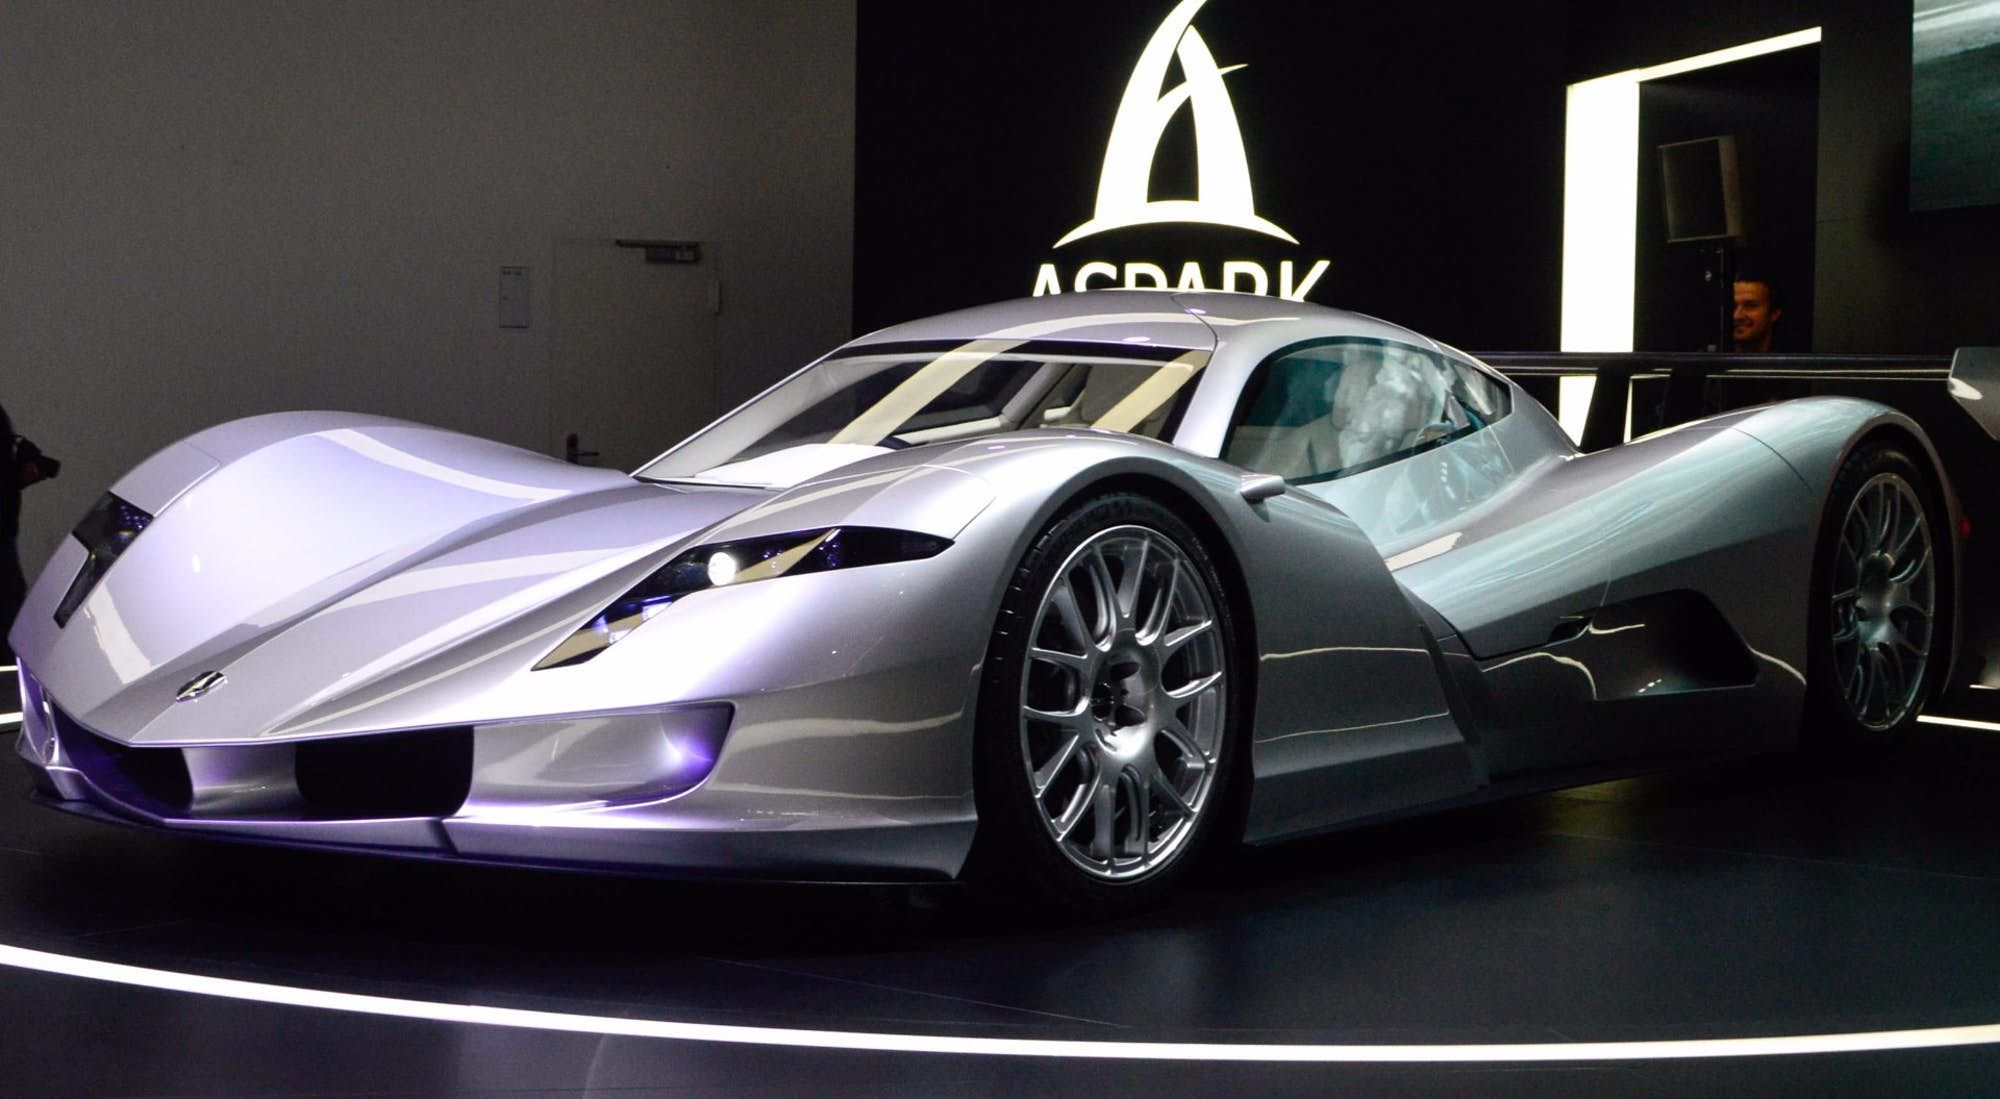 In Photos Supercars And Sports Cars Scorch The Floor Of Frankfurt Cool Sports Cars Sports Cars Super Cars